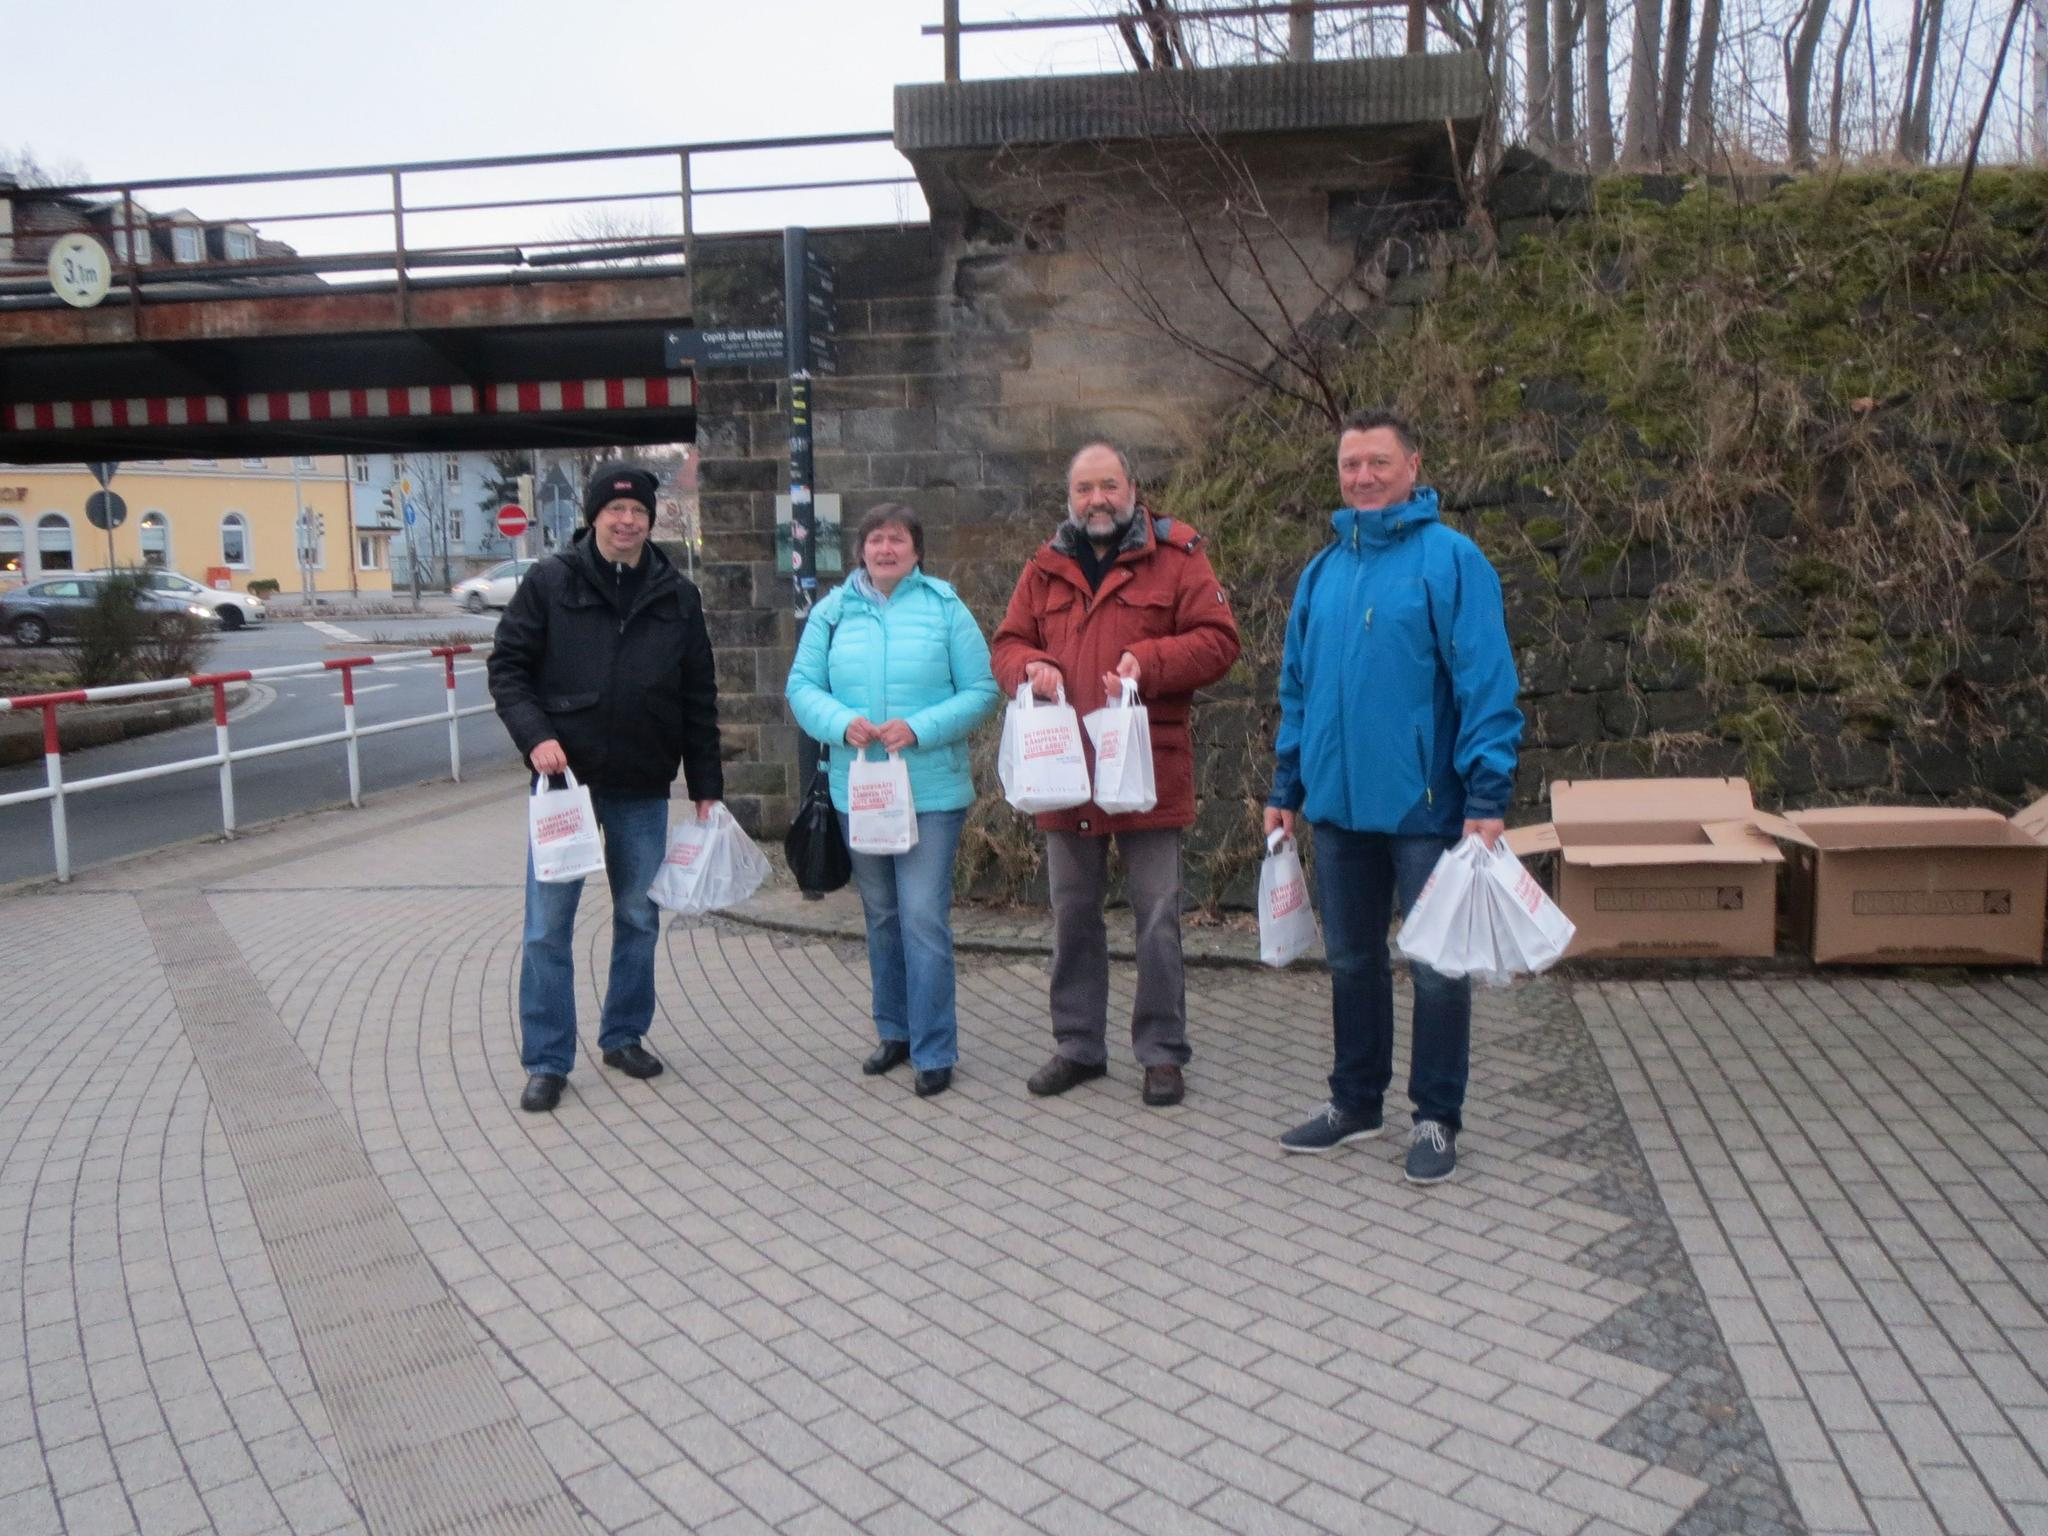 Pendleraktion in Pirna